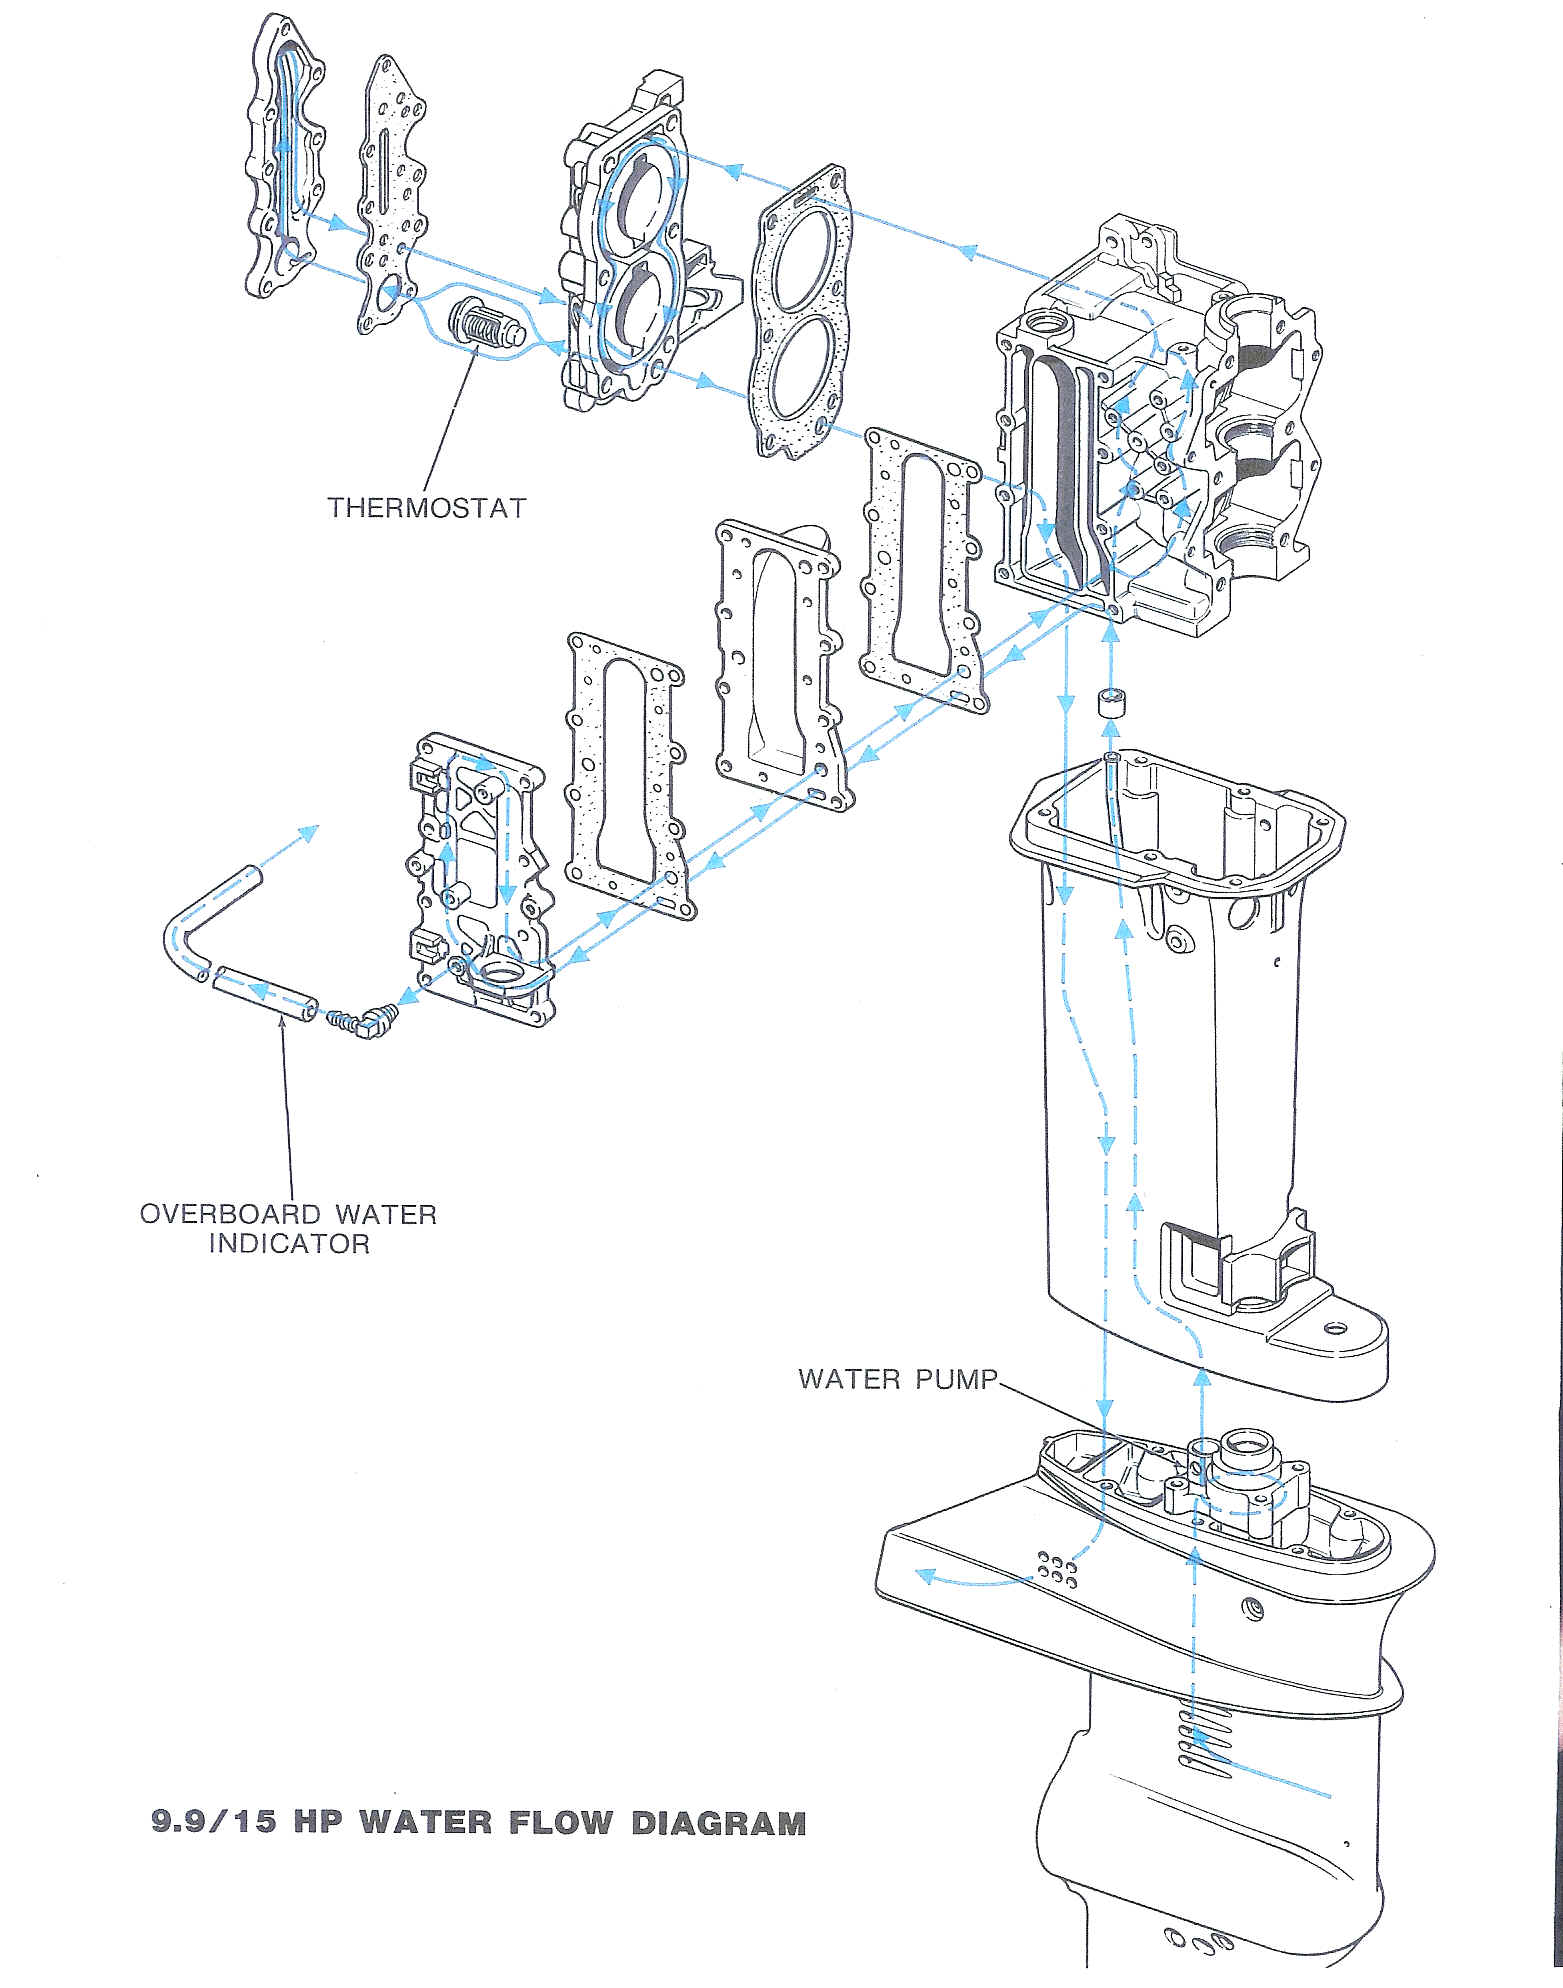 25 Hp Evinrude Parts Diagram | Wiring Diagram 2019  Johnson Outboard Wiring Diagram on 1970 115 johnson seahorse diagram, 115 hp outboard motor diagram, live well diagram, johnson 115 parts diagram, 115 mercury diagram, johnson motor diagram, johnson ignition wiring diagram, trolling motor diagram,